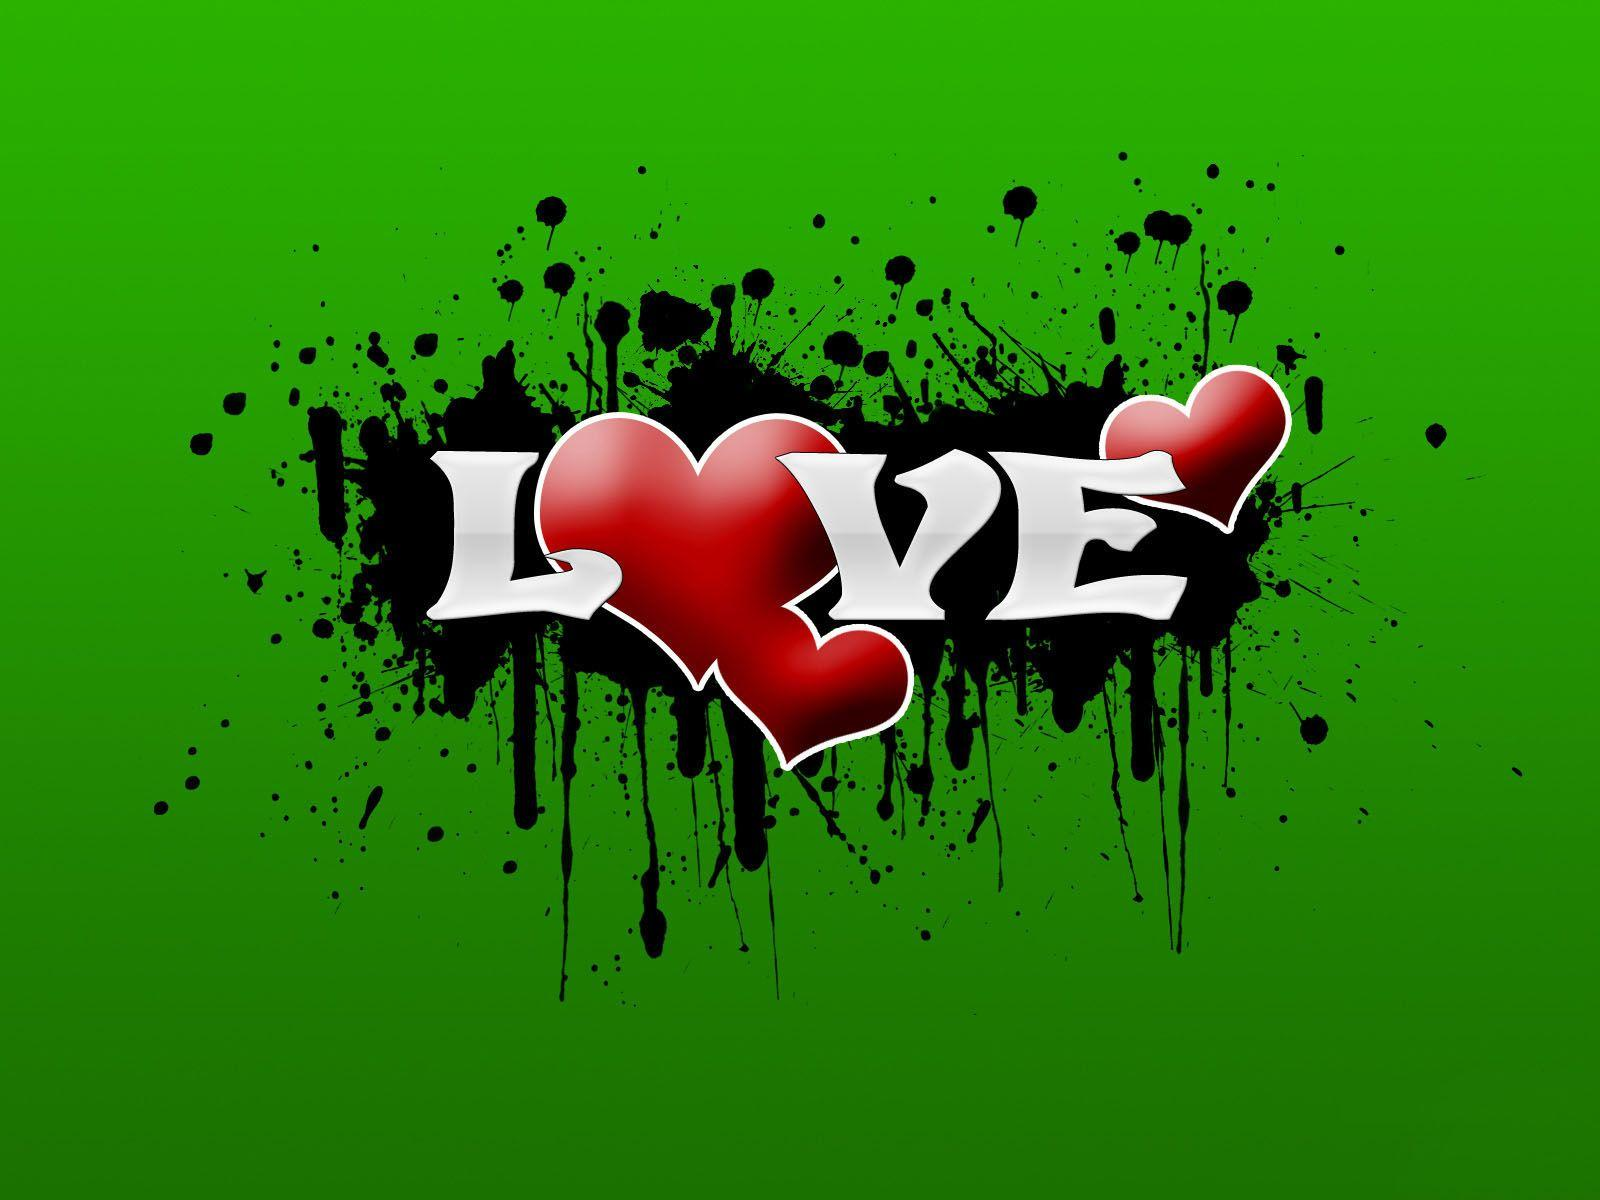 Wallpaper Love You 3d : Love Wallpapers 3D - Wallpaper cave